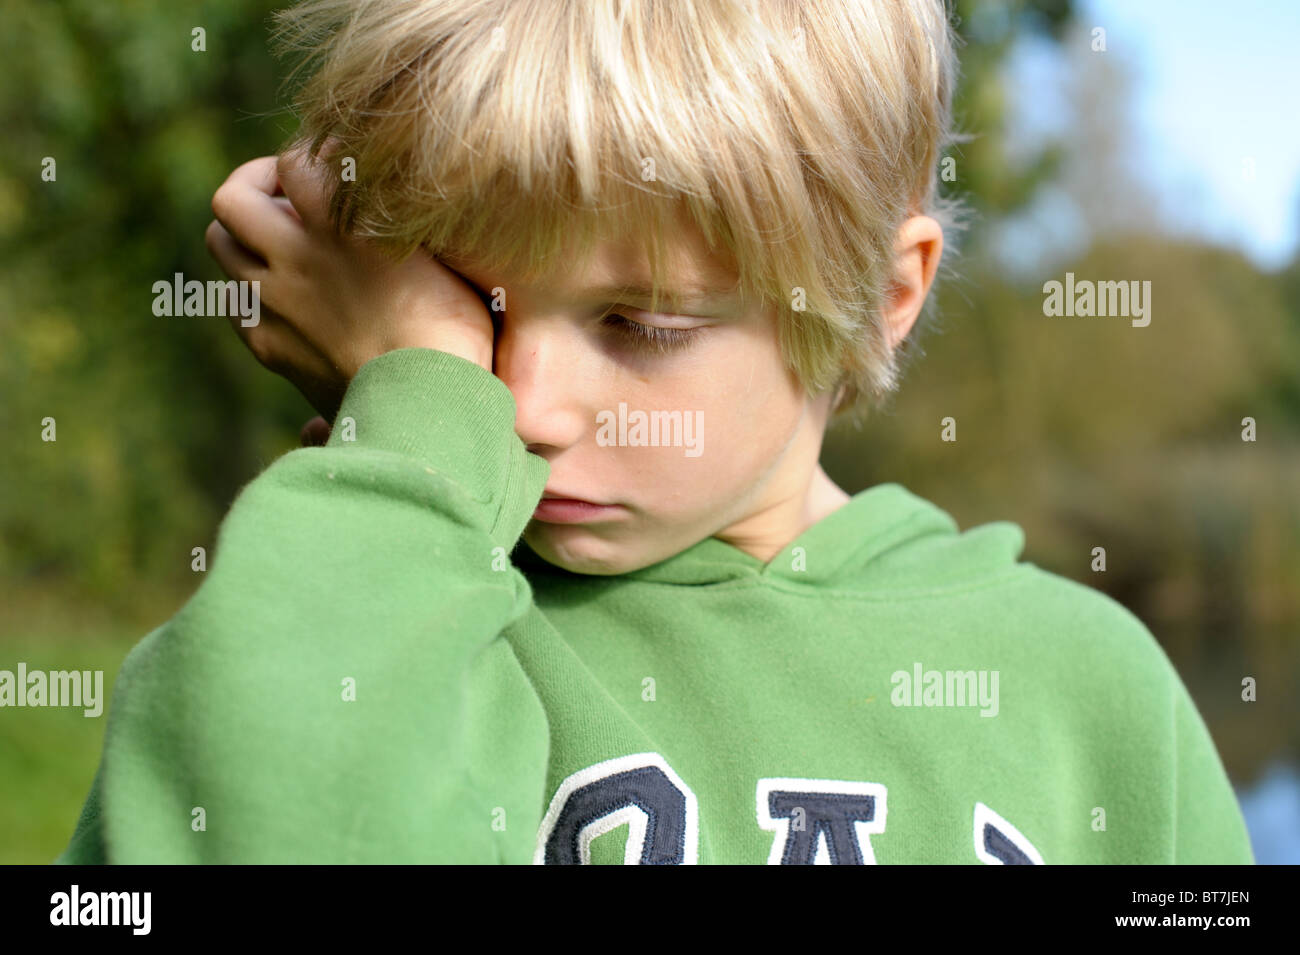 Tearful, sulking, fed-up blond-haired little boy in a green top standing outside - Stock Image